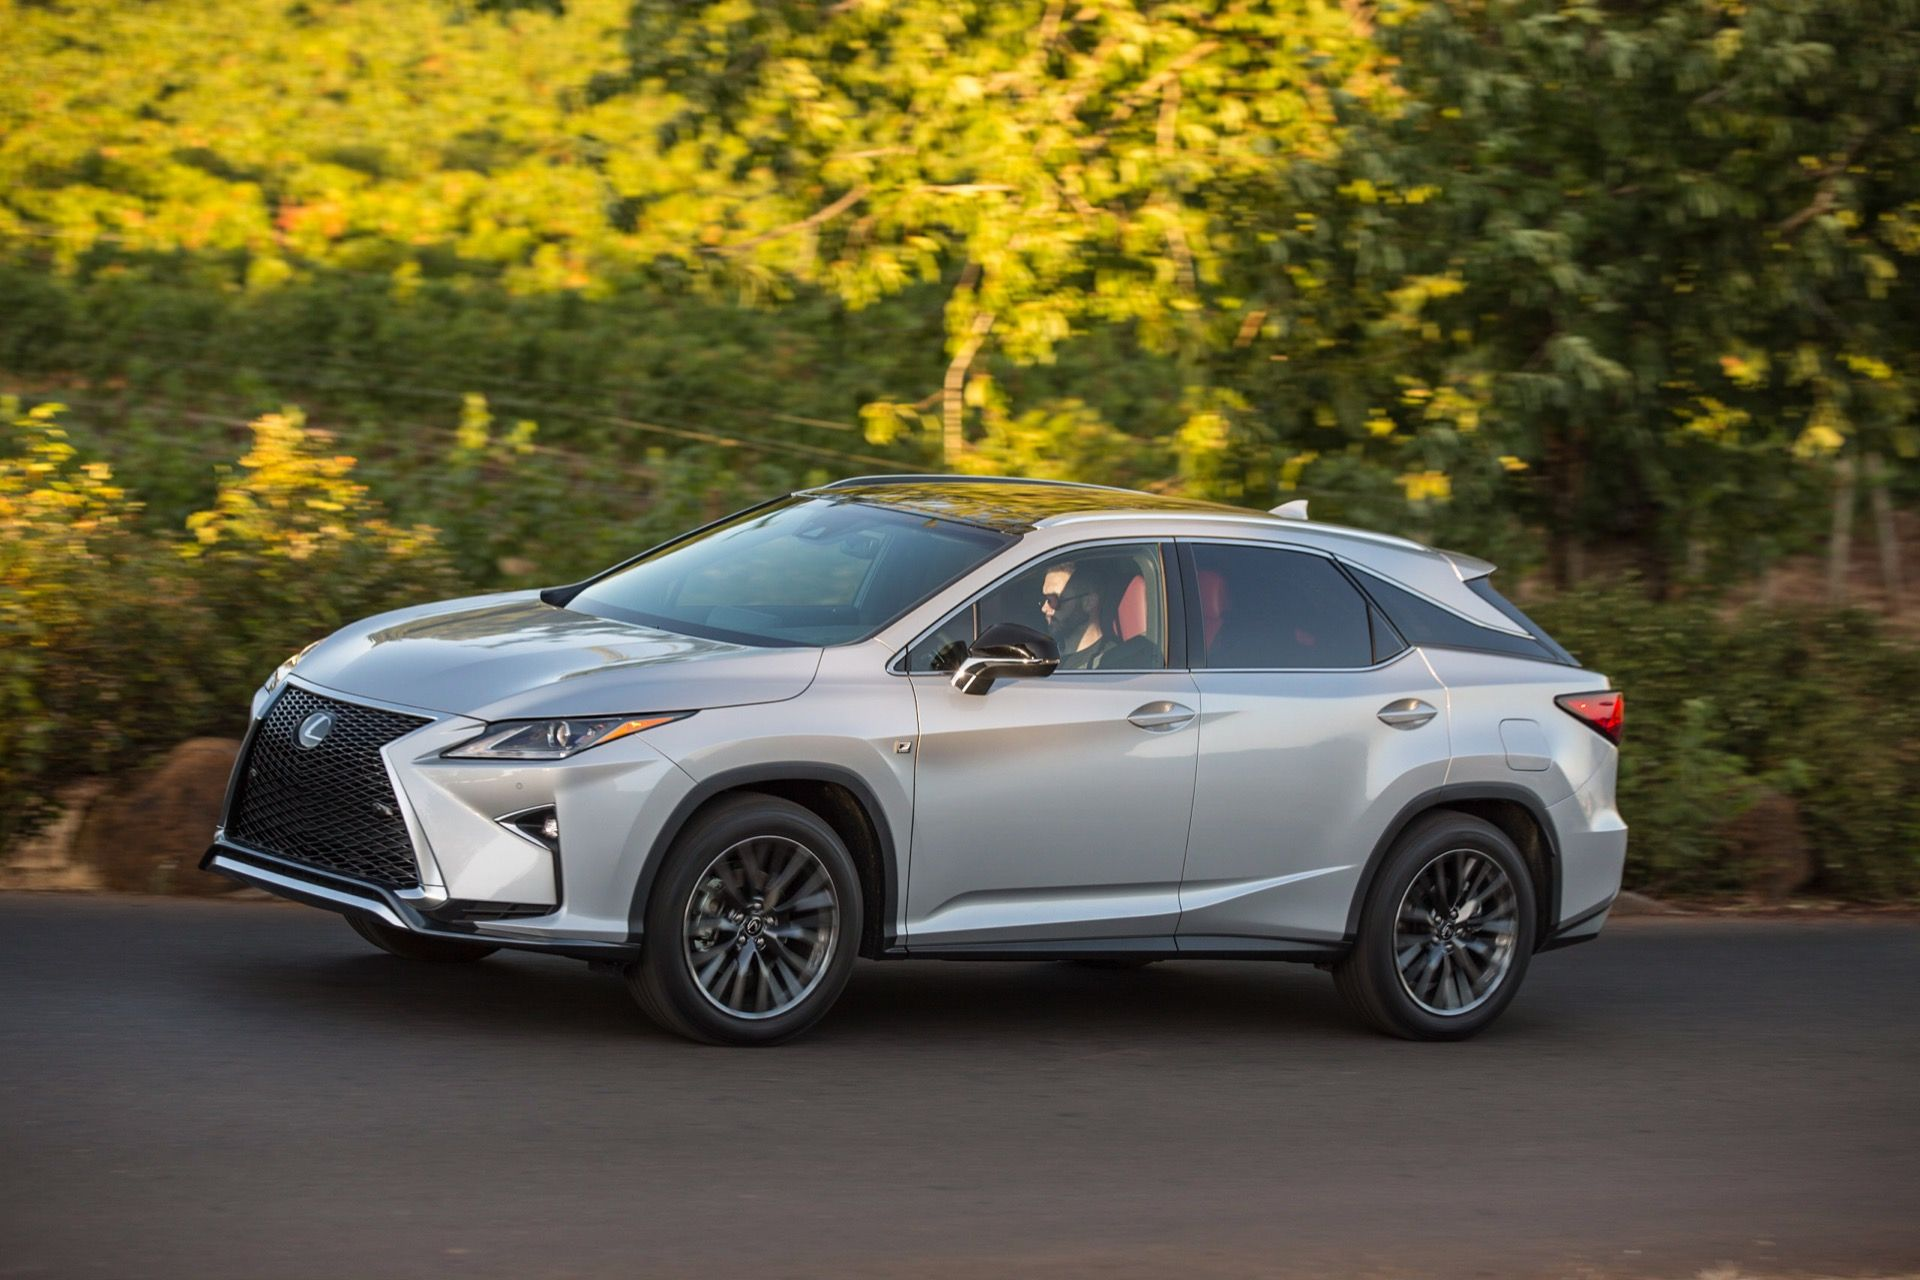 2019 Lexus ES 350 Car Photos Catalog 2019 Lexus rx 350